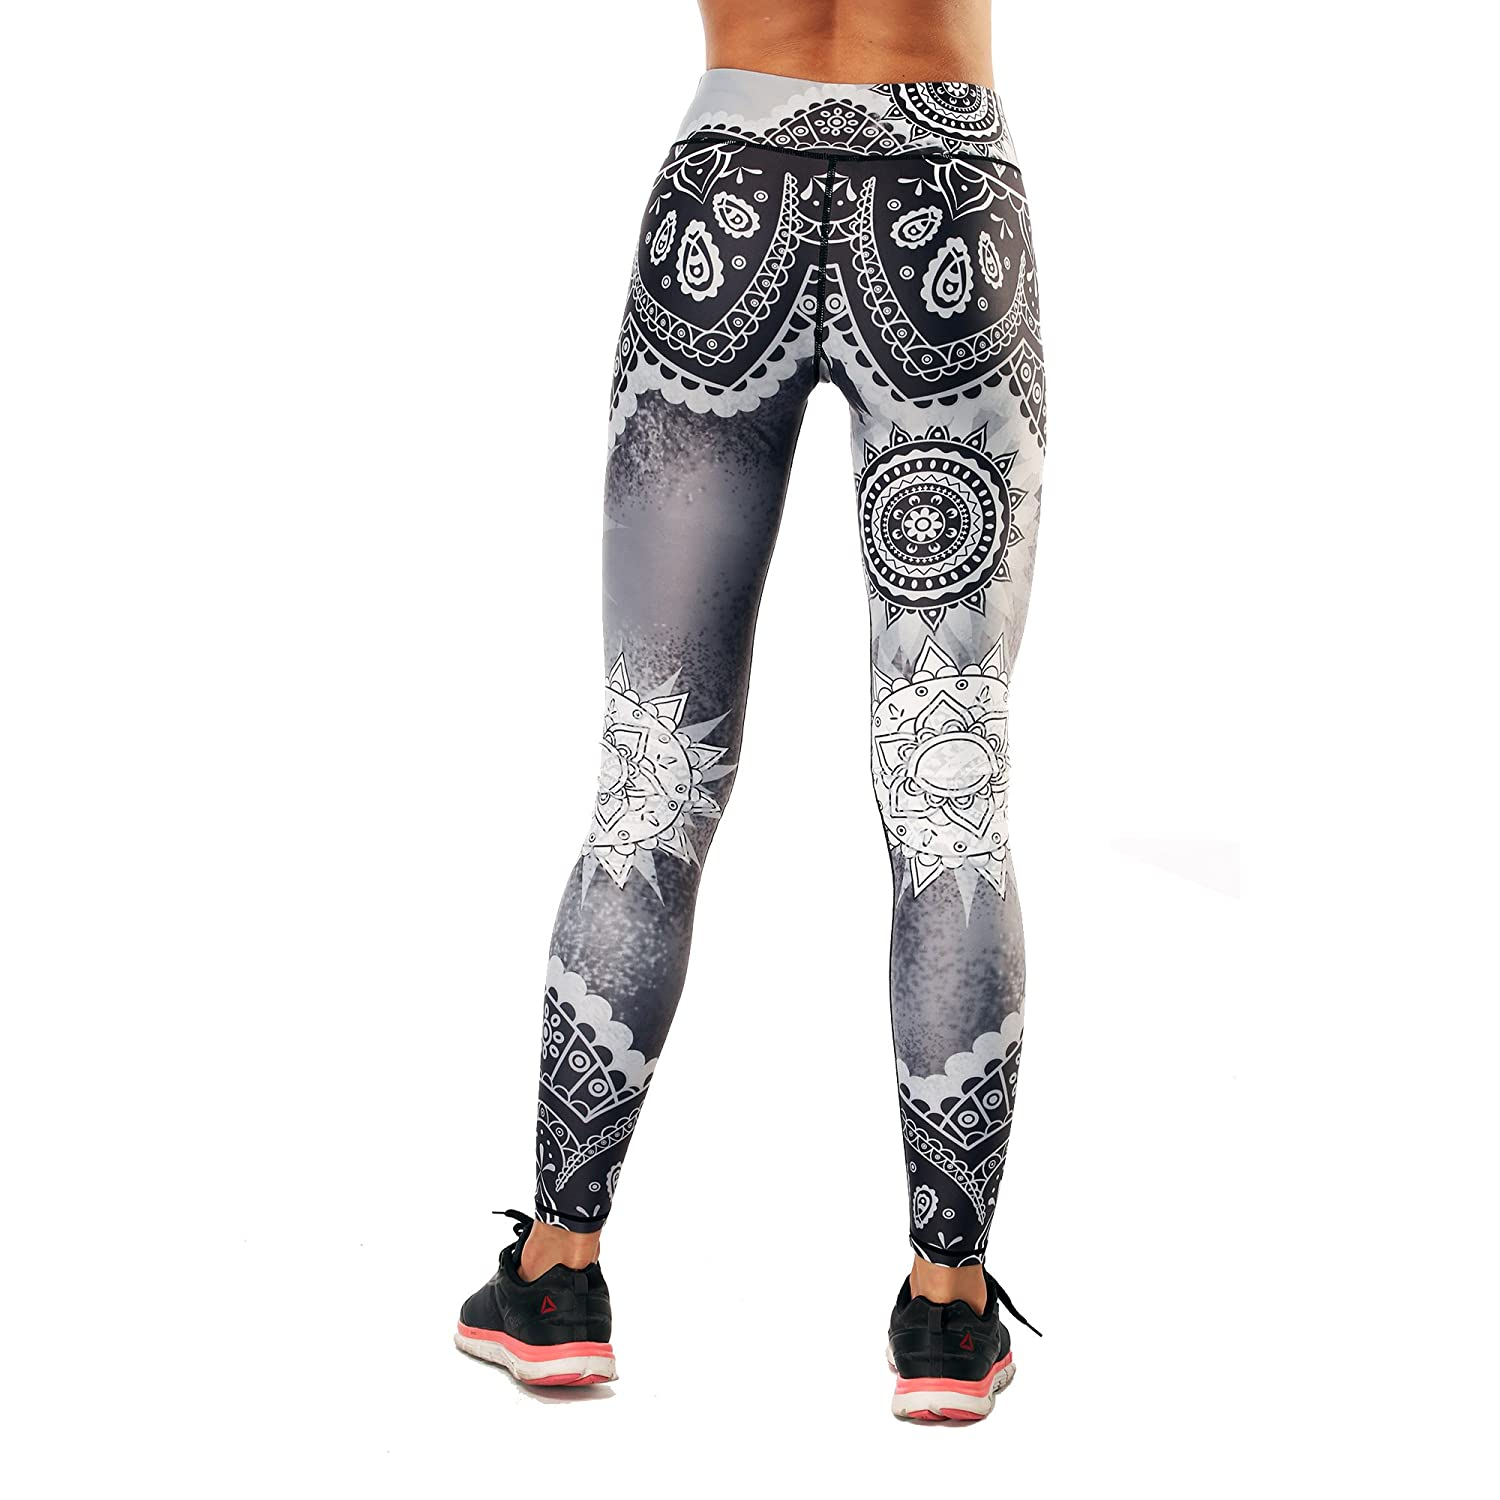 Maxfedo Womens 3D Print High Waist Yoga Pants Workout Running Leggings(Black White Pattern, L) at Amazon Womens Clothing store: